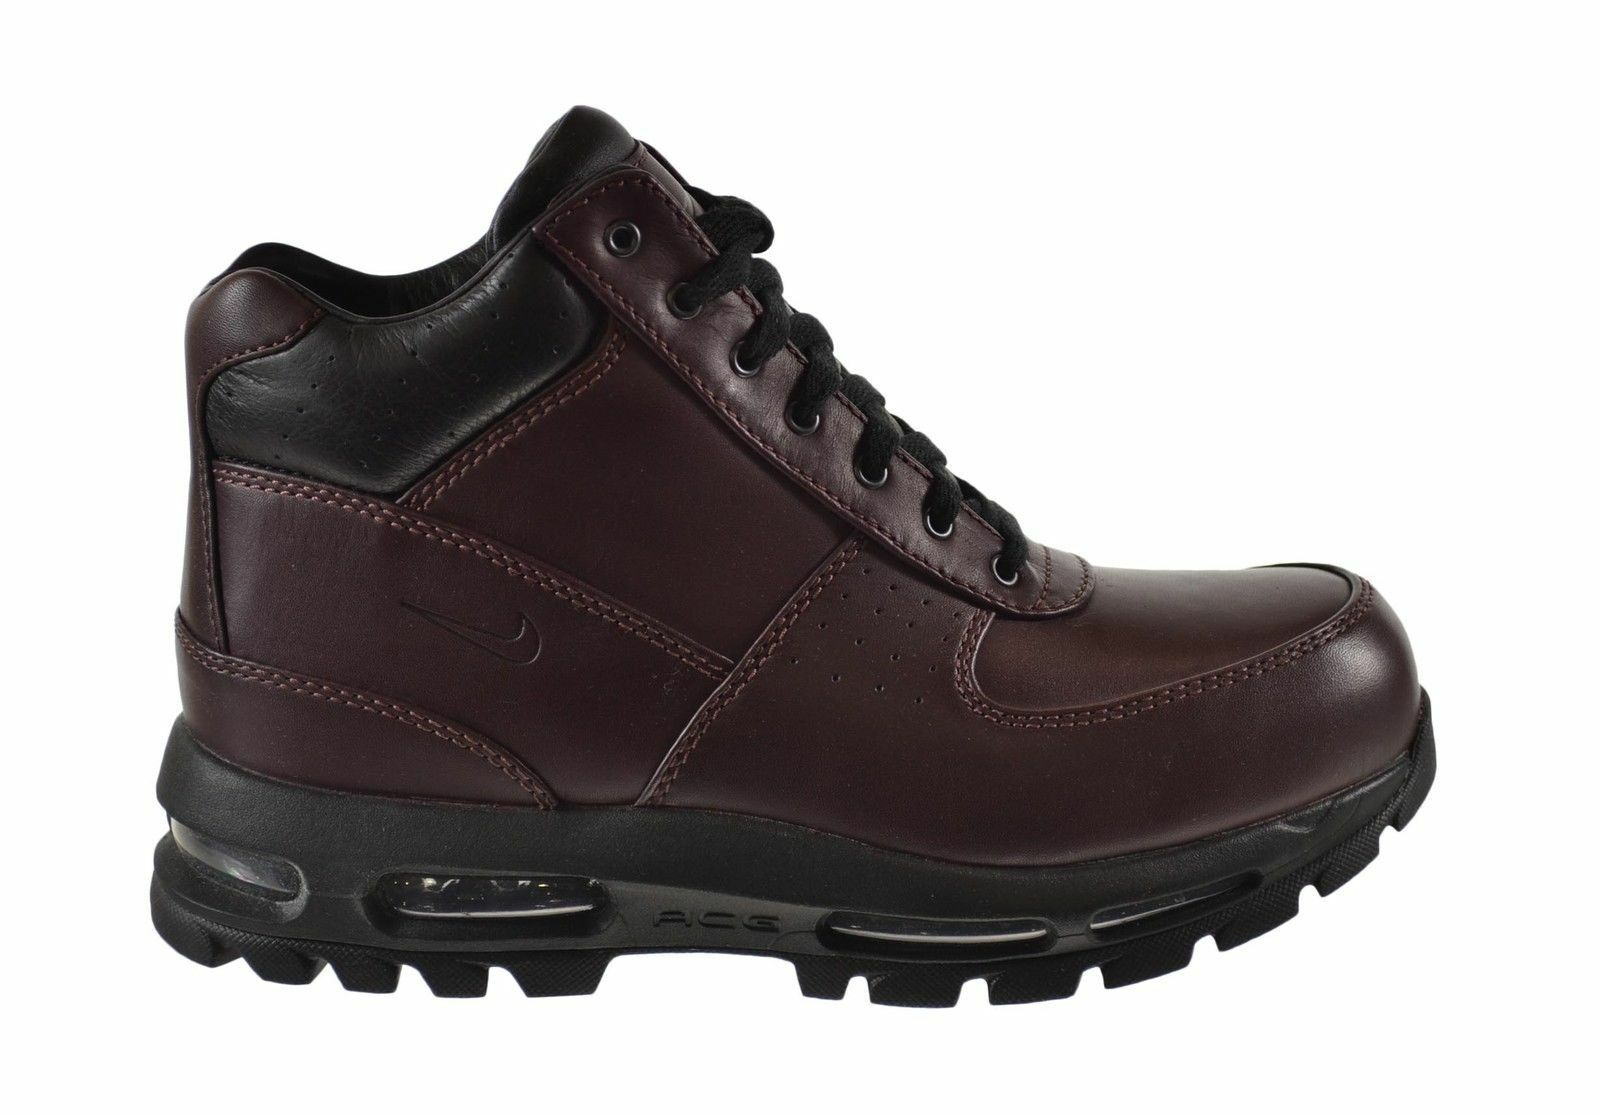 865031-601 Men's Nike Air Max Goadome Boots DEEP BURGUNDY/BLACK WATERPROOF